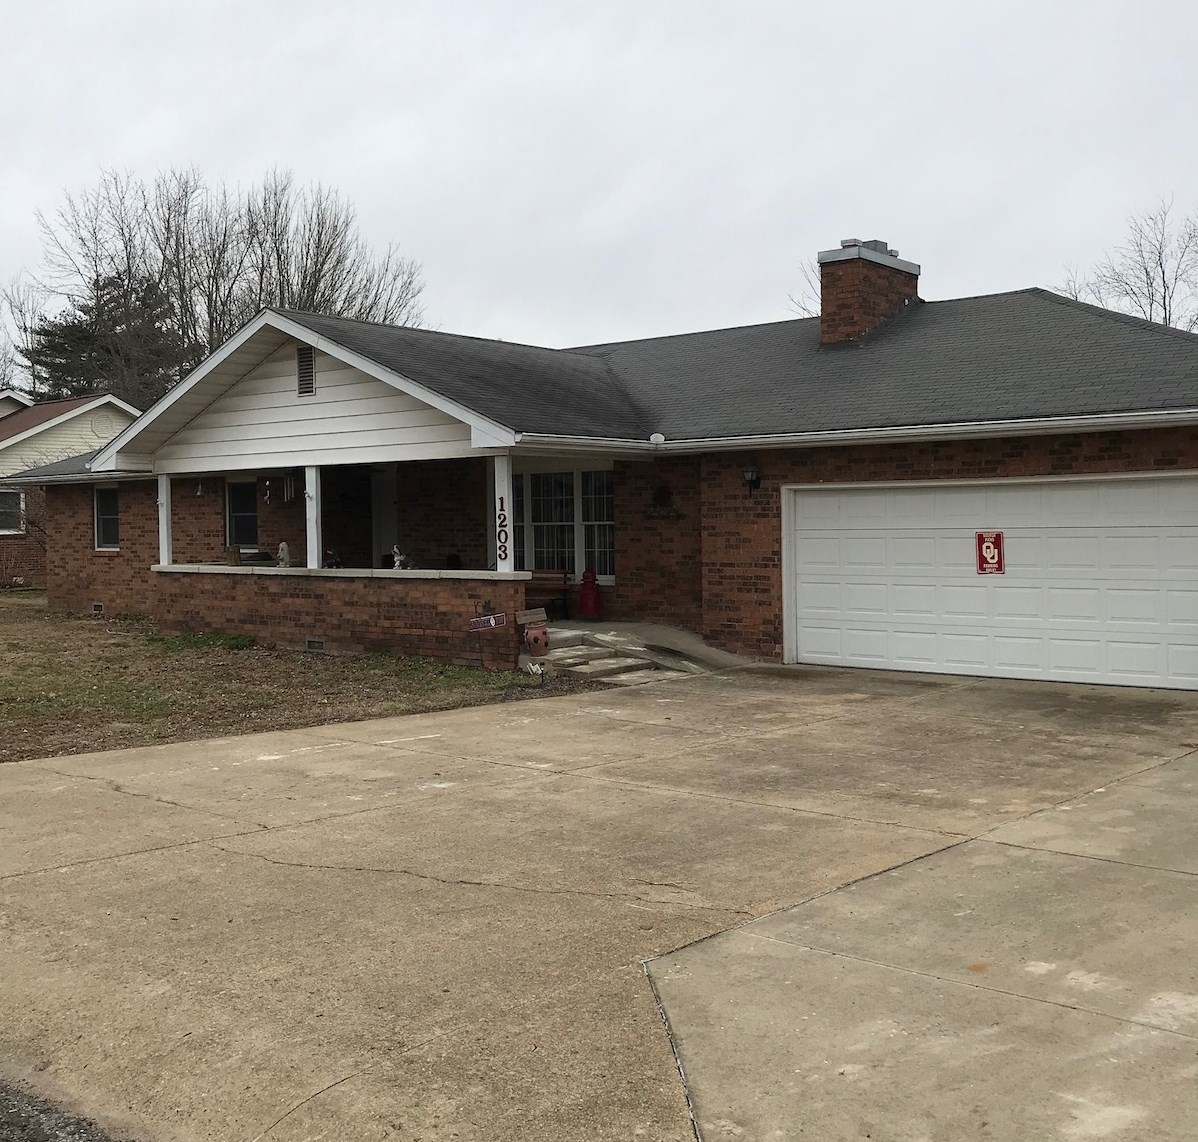 Brick Home in Town for Sale - Mountain Grove, Missouri